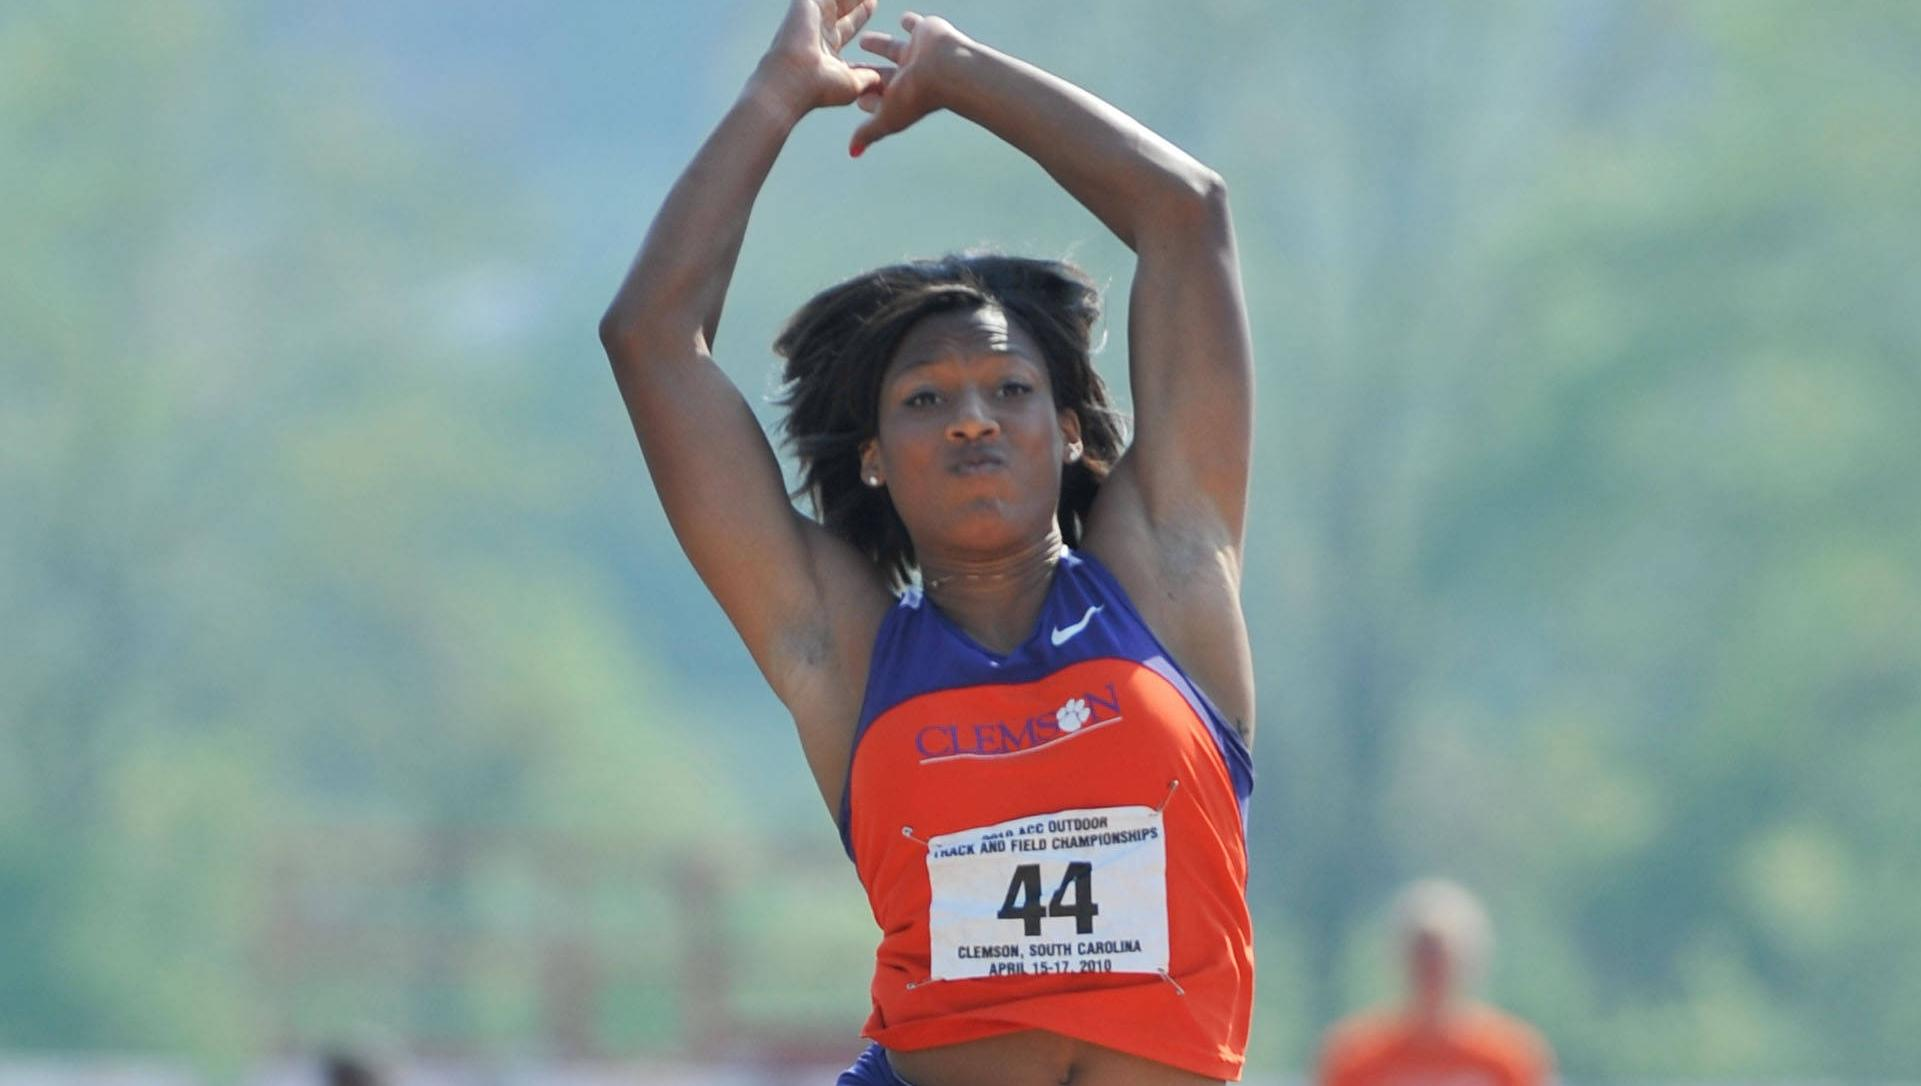 Mamona Second at European Championships; Crawford to 200 Final in U.S. Olympic Trials